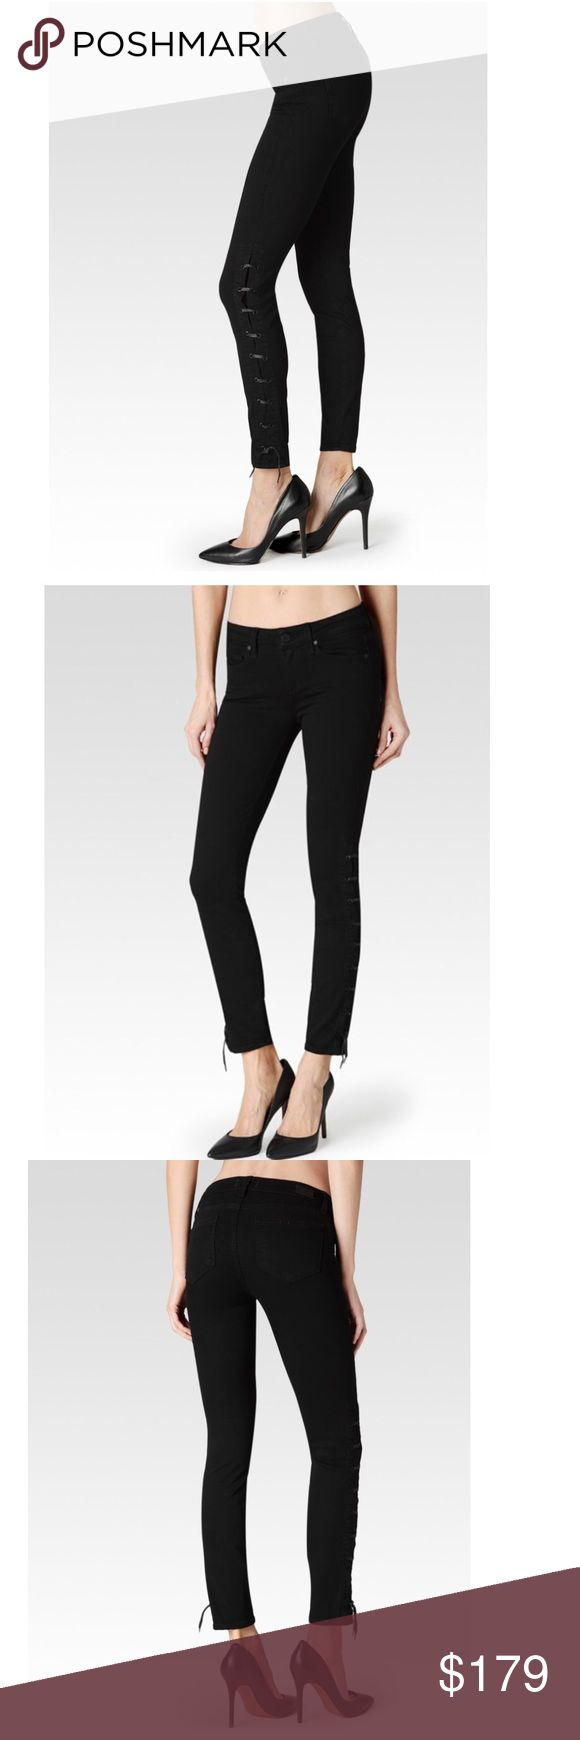 "Paige black ankle jeans-NWT- size 26 Paige Wyatt ankle black jeans - NWT- size 26. Features innovative transcend technology that promises a luxurious feel, comfortable fit, & unyielding support. Showcasing a romantic, lace-up detailing that gracefully stretches from the ankle to high knee, this jean is designed with a slim fit and delicate charm. Mid-rise, ankle-length. According to Paige website: inseam: 28"", front rise: 8 3/8"".  These are amazing and sold out everywhere!!! Photo of actual…"